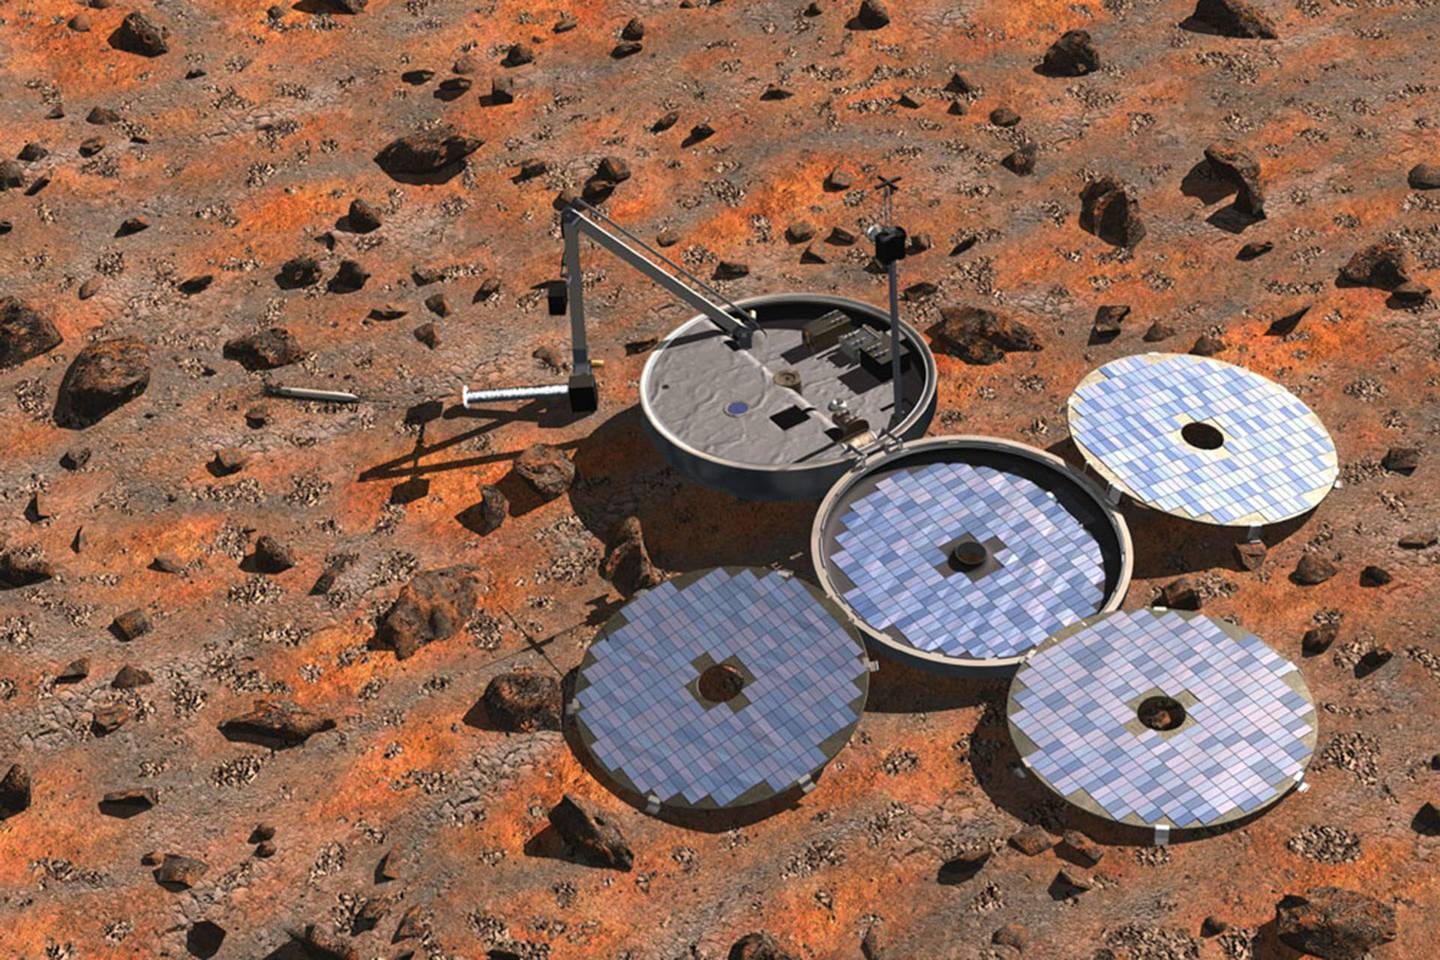 Lost Beagle 2 Mars Lander Found 11 Years After Launch